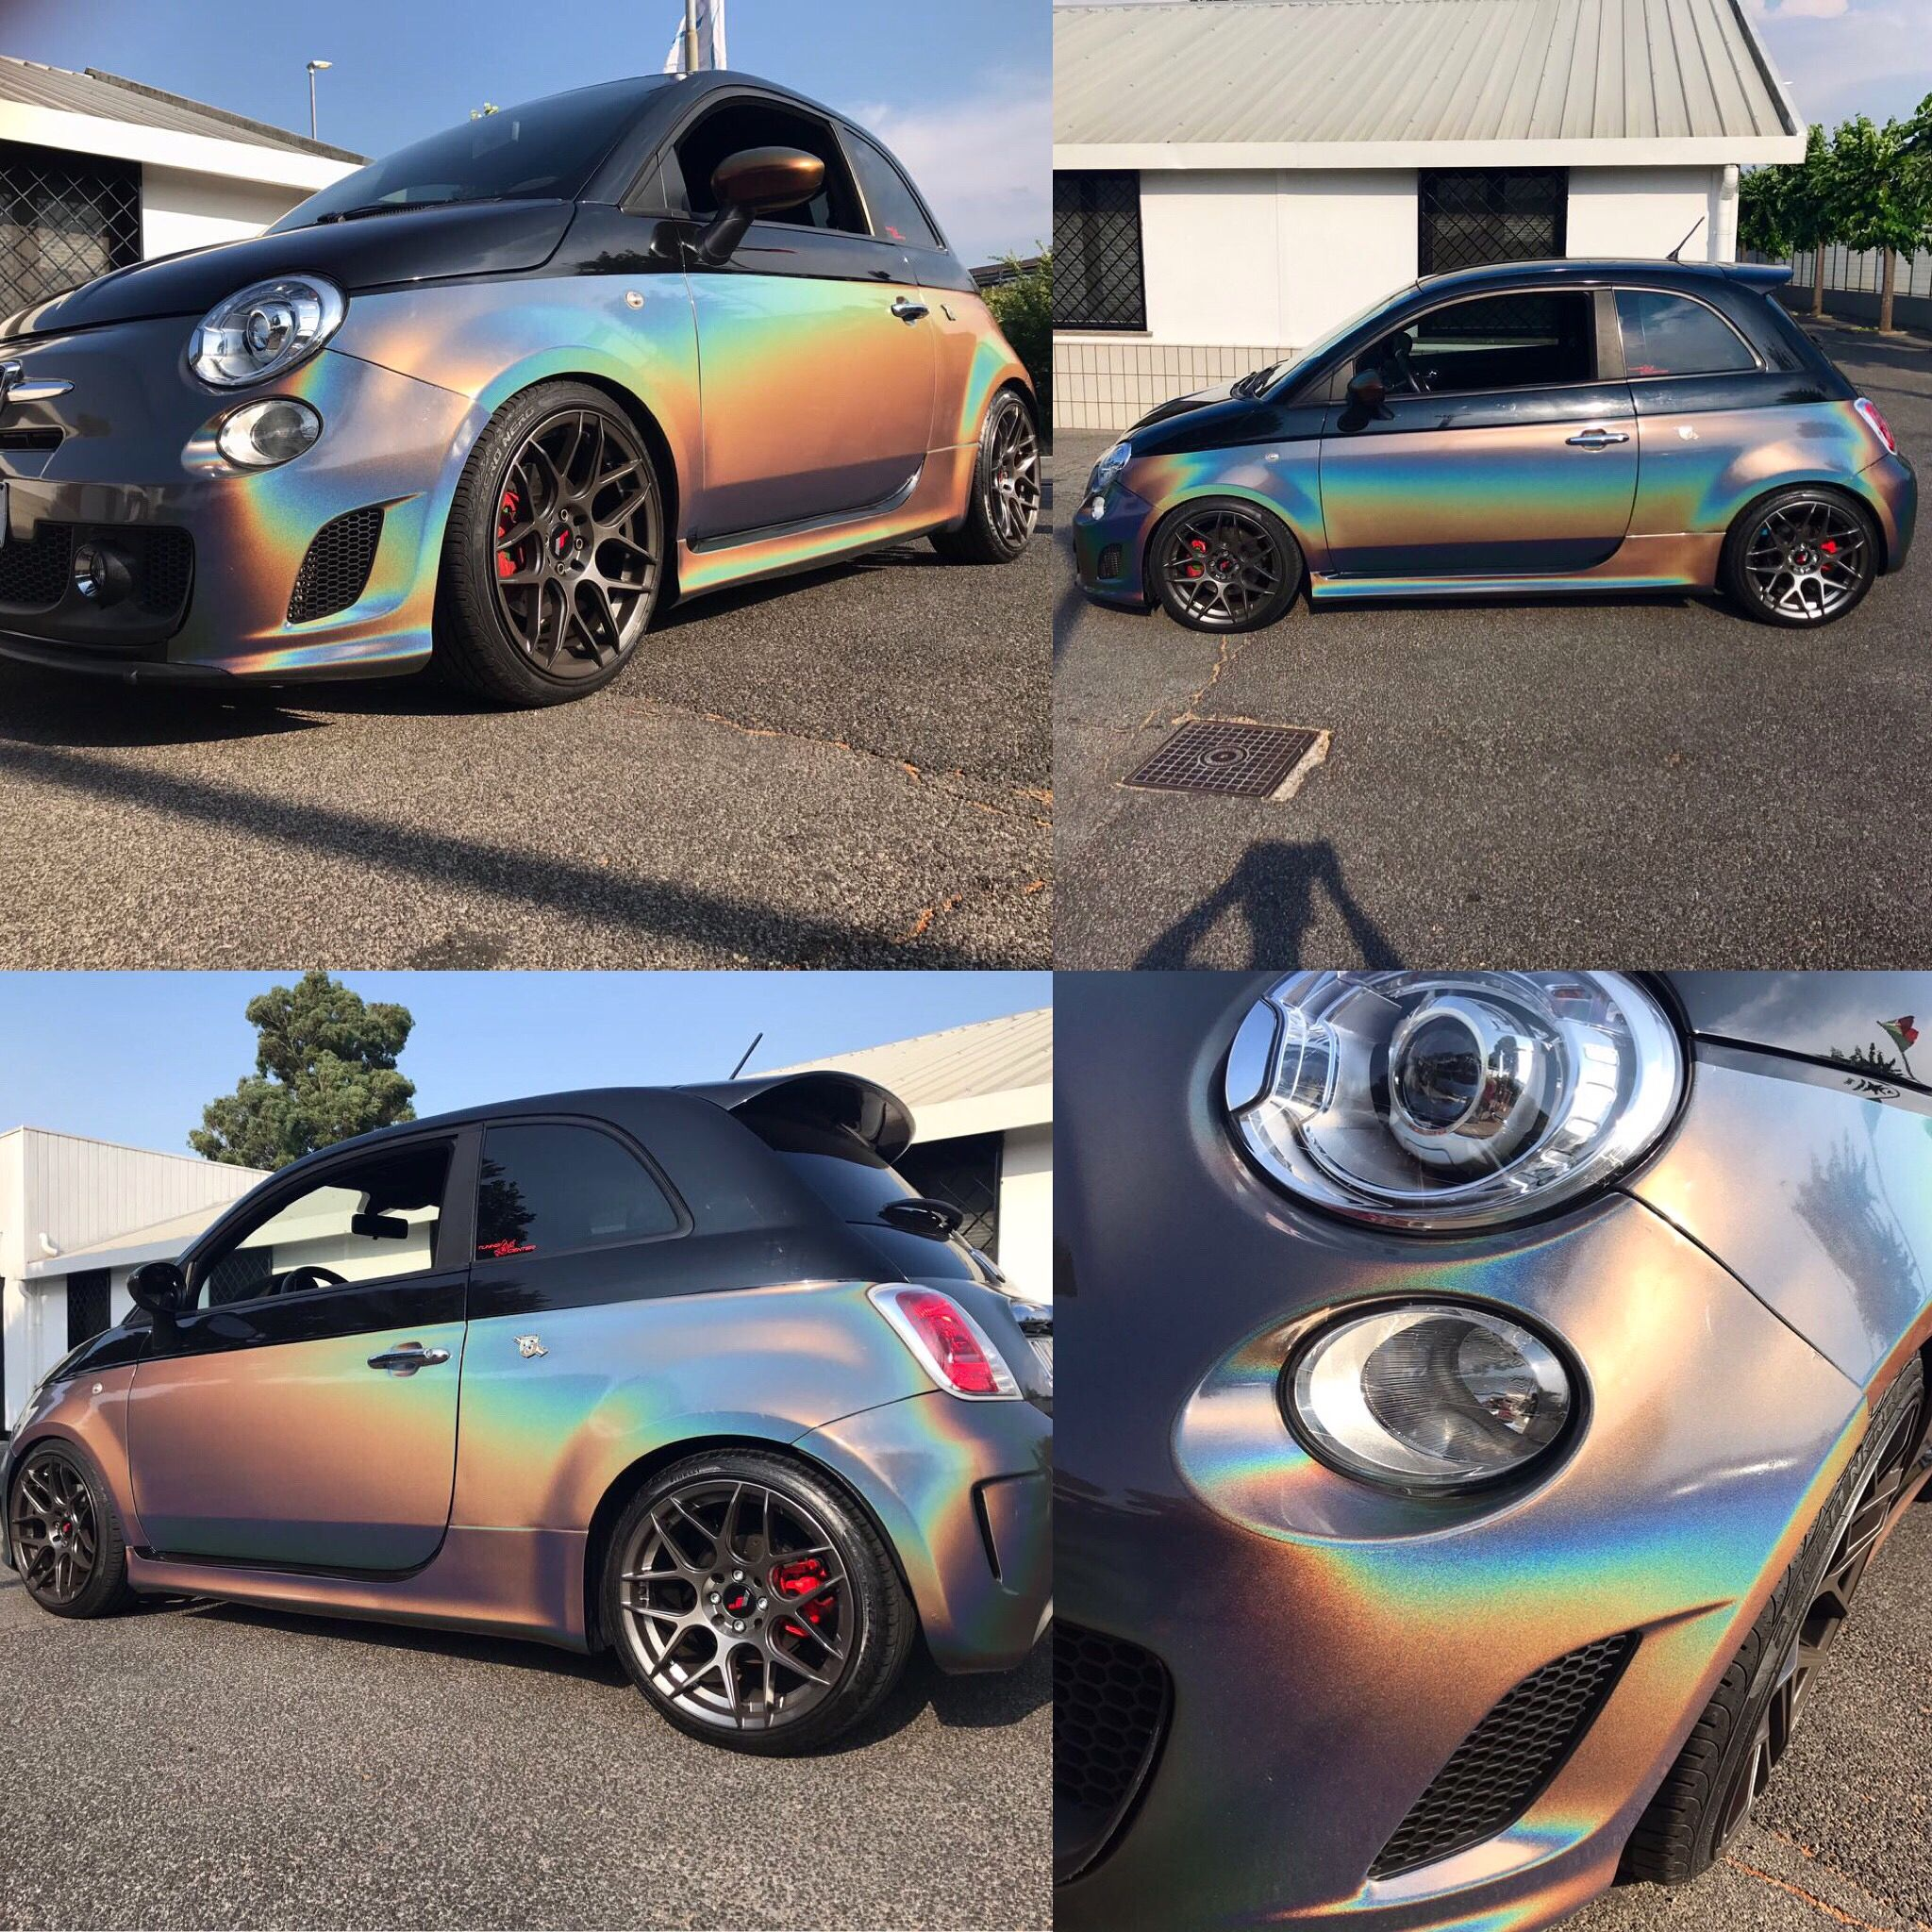 Fiat 500 Abarth Psichedelic Wrap 1 Of 1 We Use This Matereal For